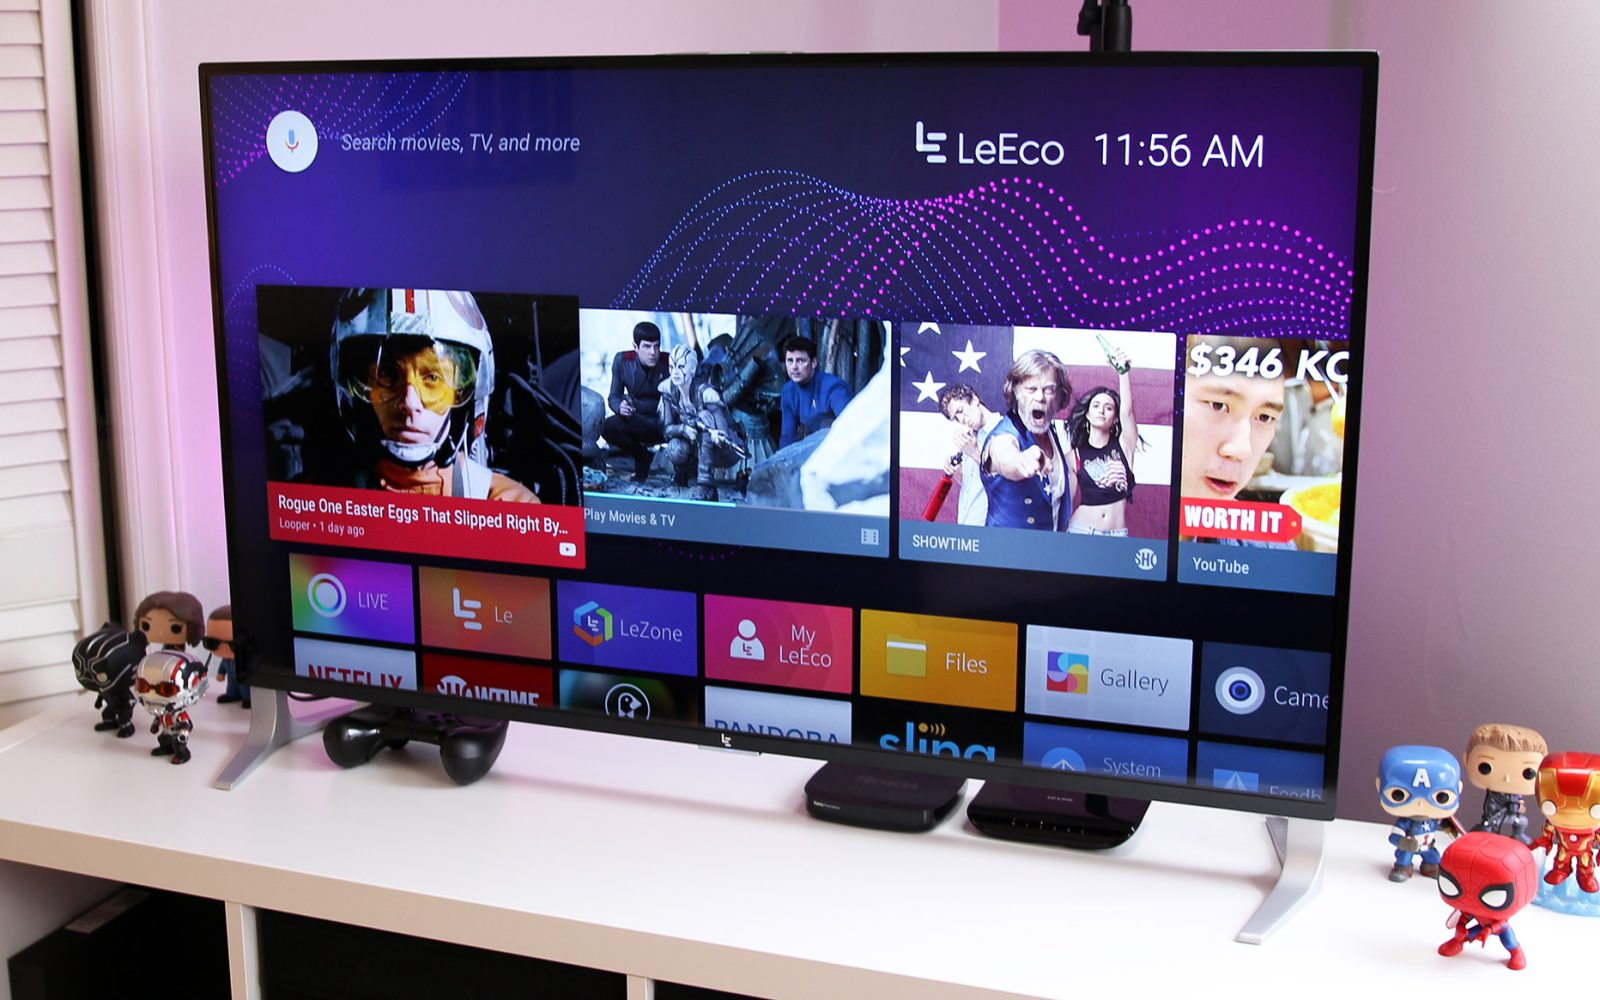 Review: The Android TV-powered LeEco Super4 X43 4K TV is